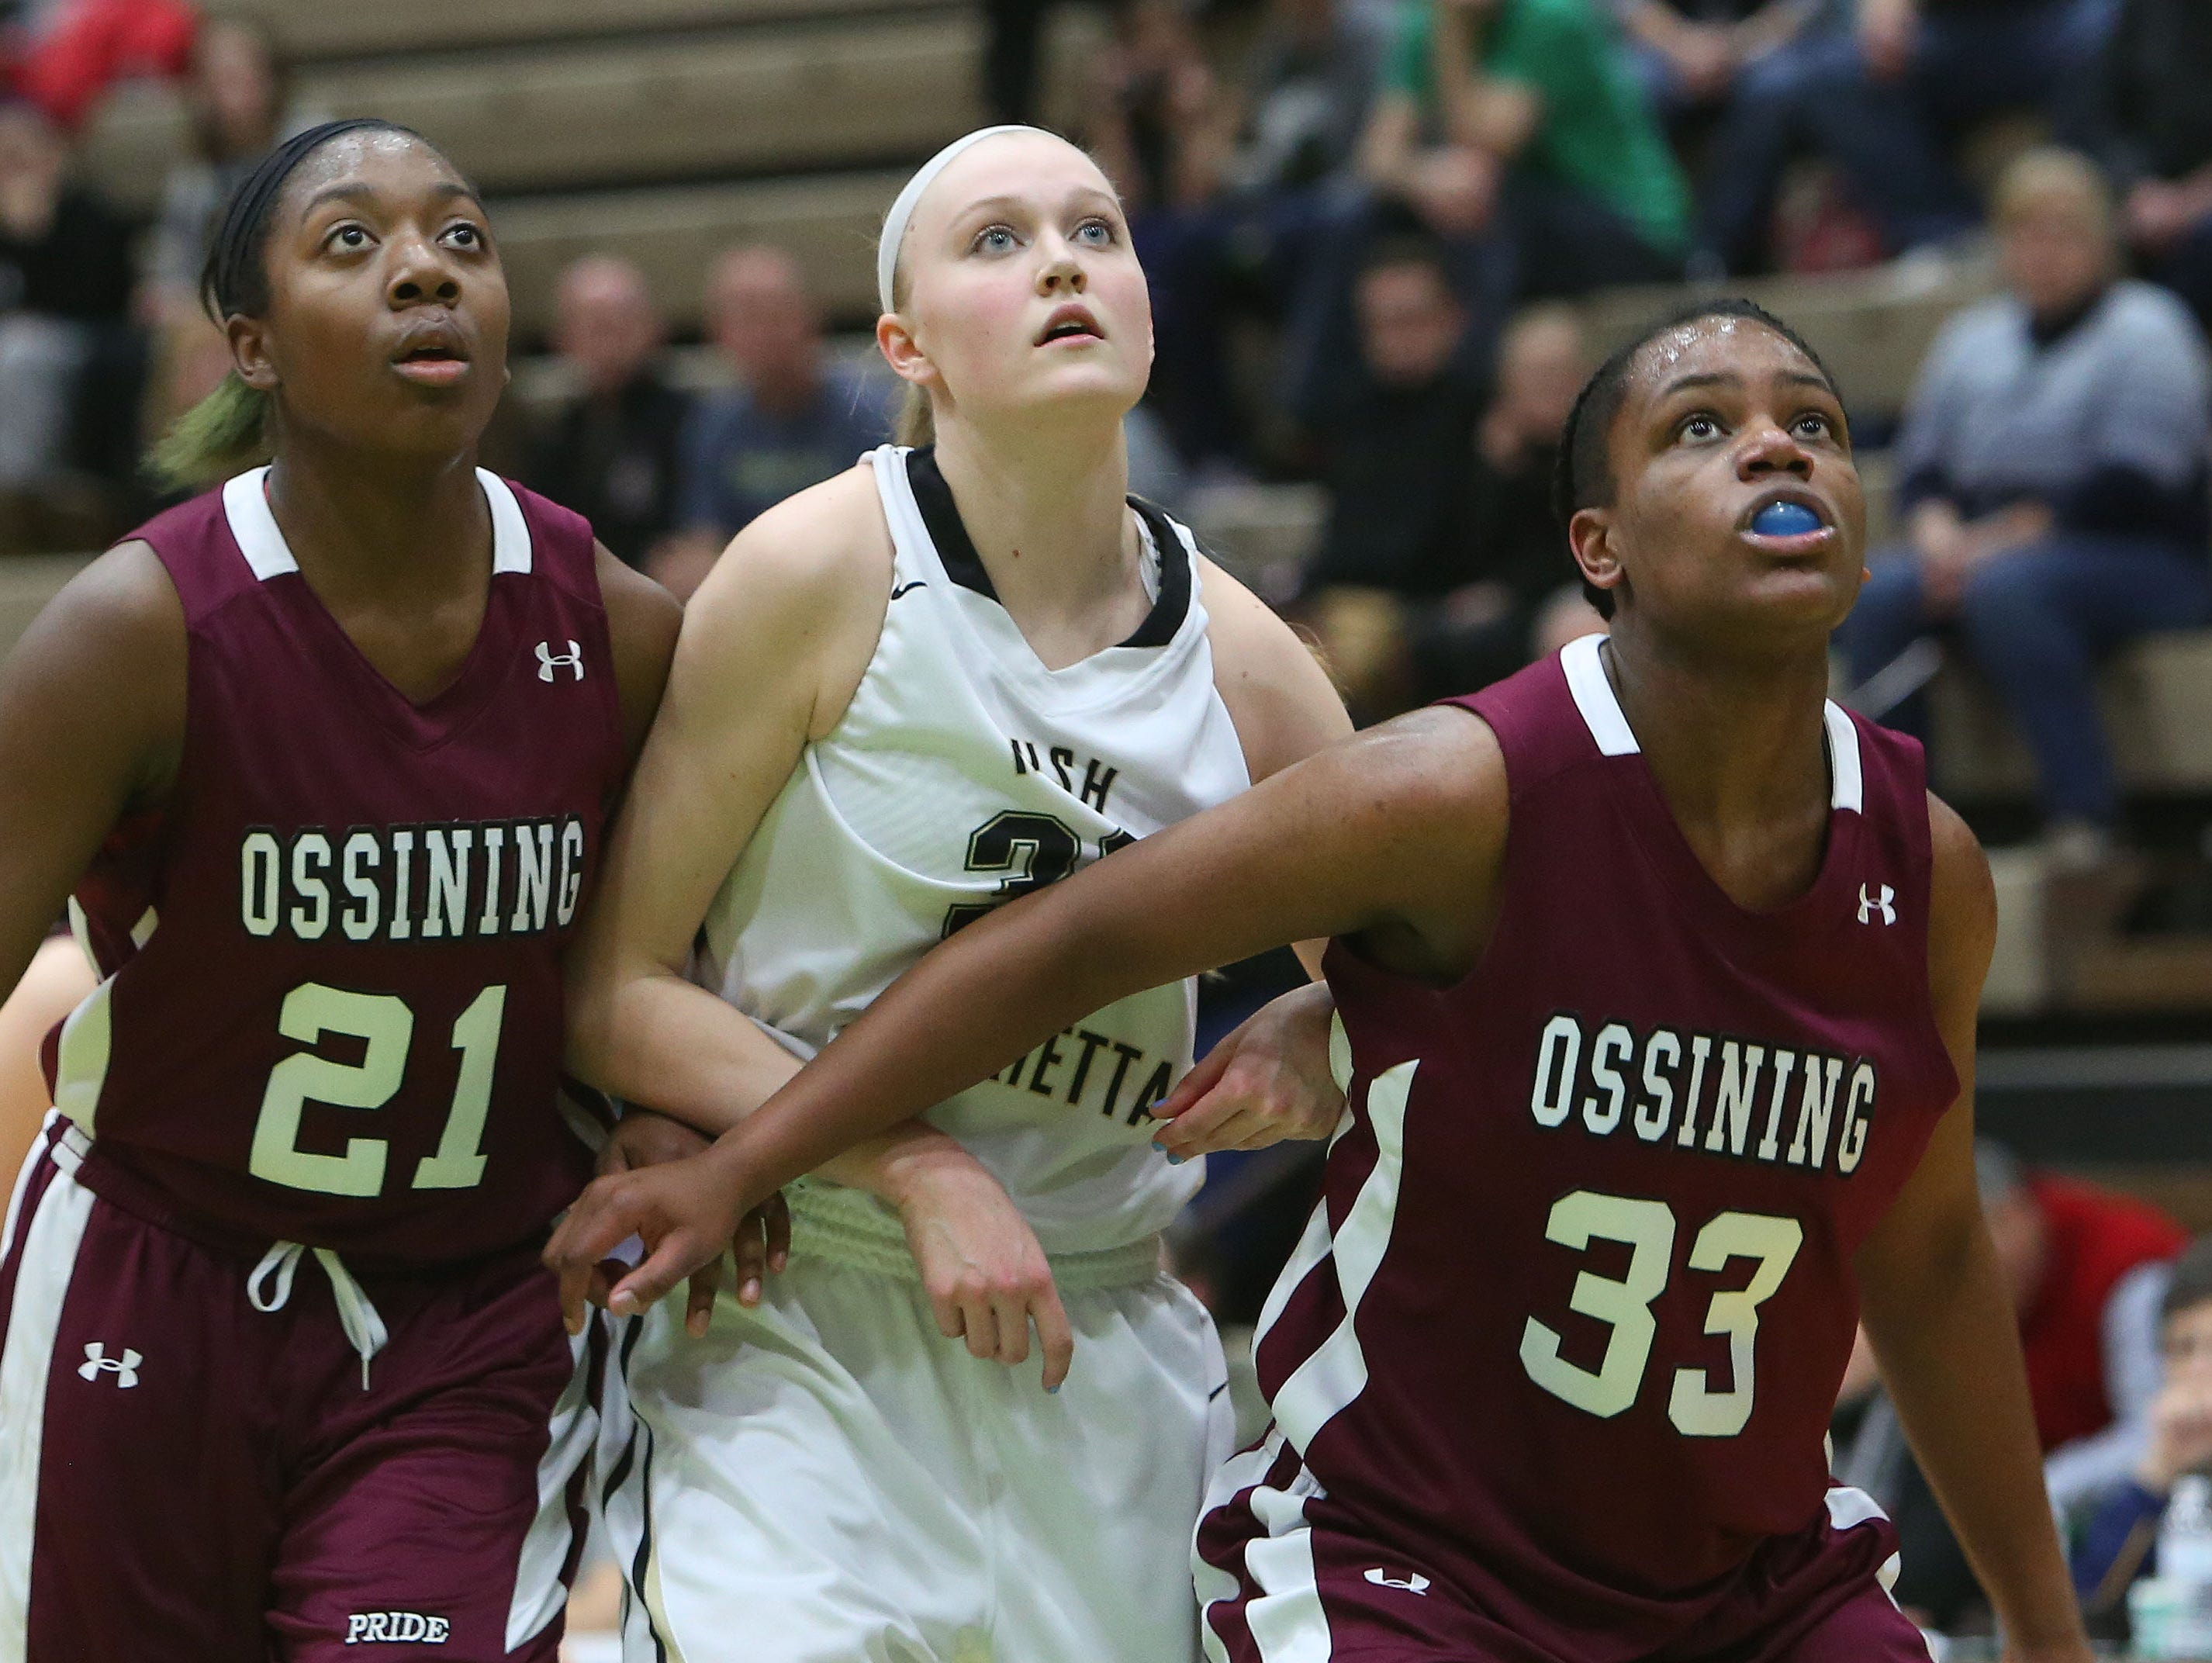 Ossining's Shadeen Samuels (21) and Jalay Knowles (33) box out against Rush Henrietta in the girls state Class AA championship game at Hudson Valley Community College in Troy, N.Y. March 21, 2015.